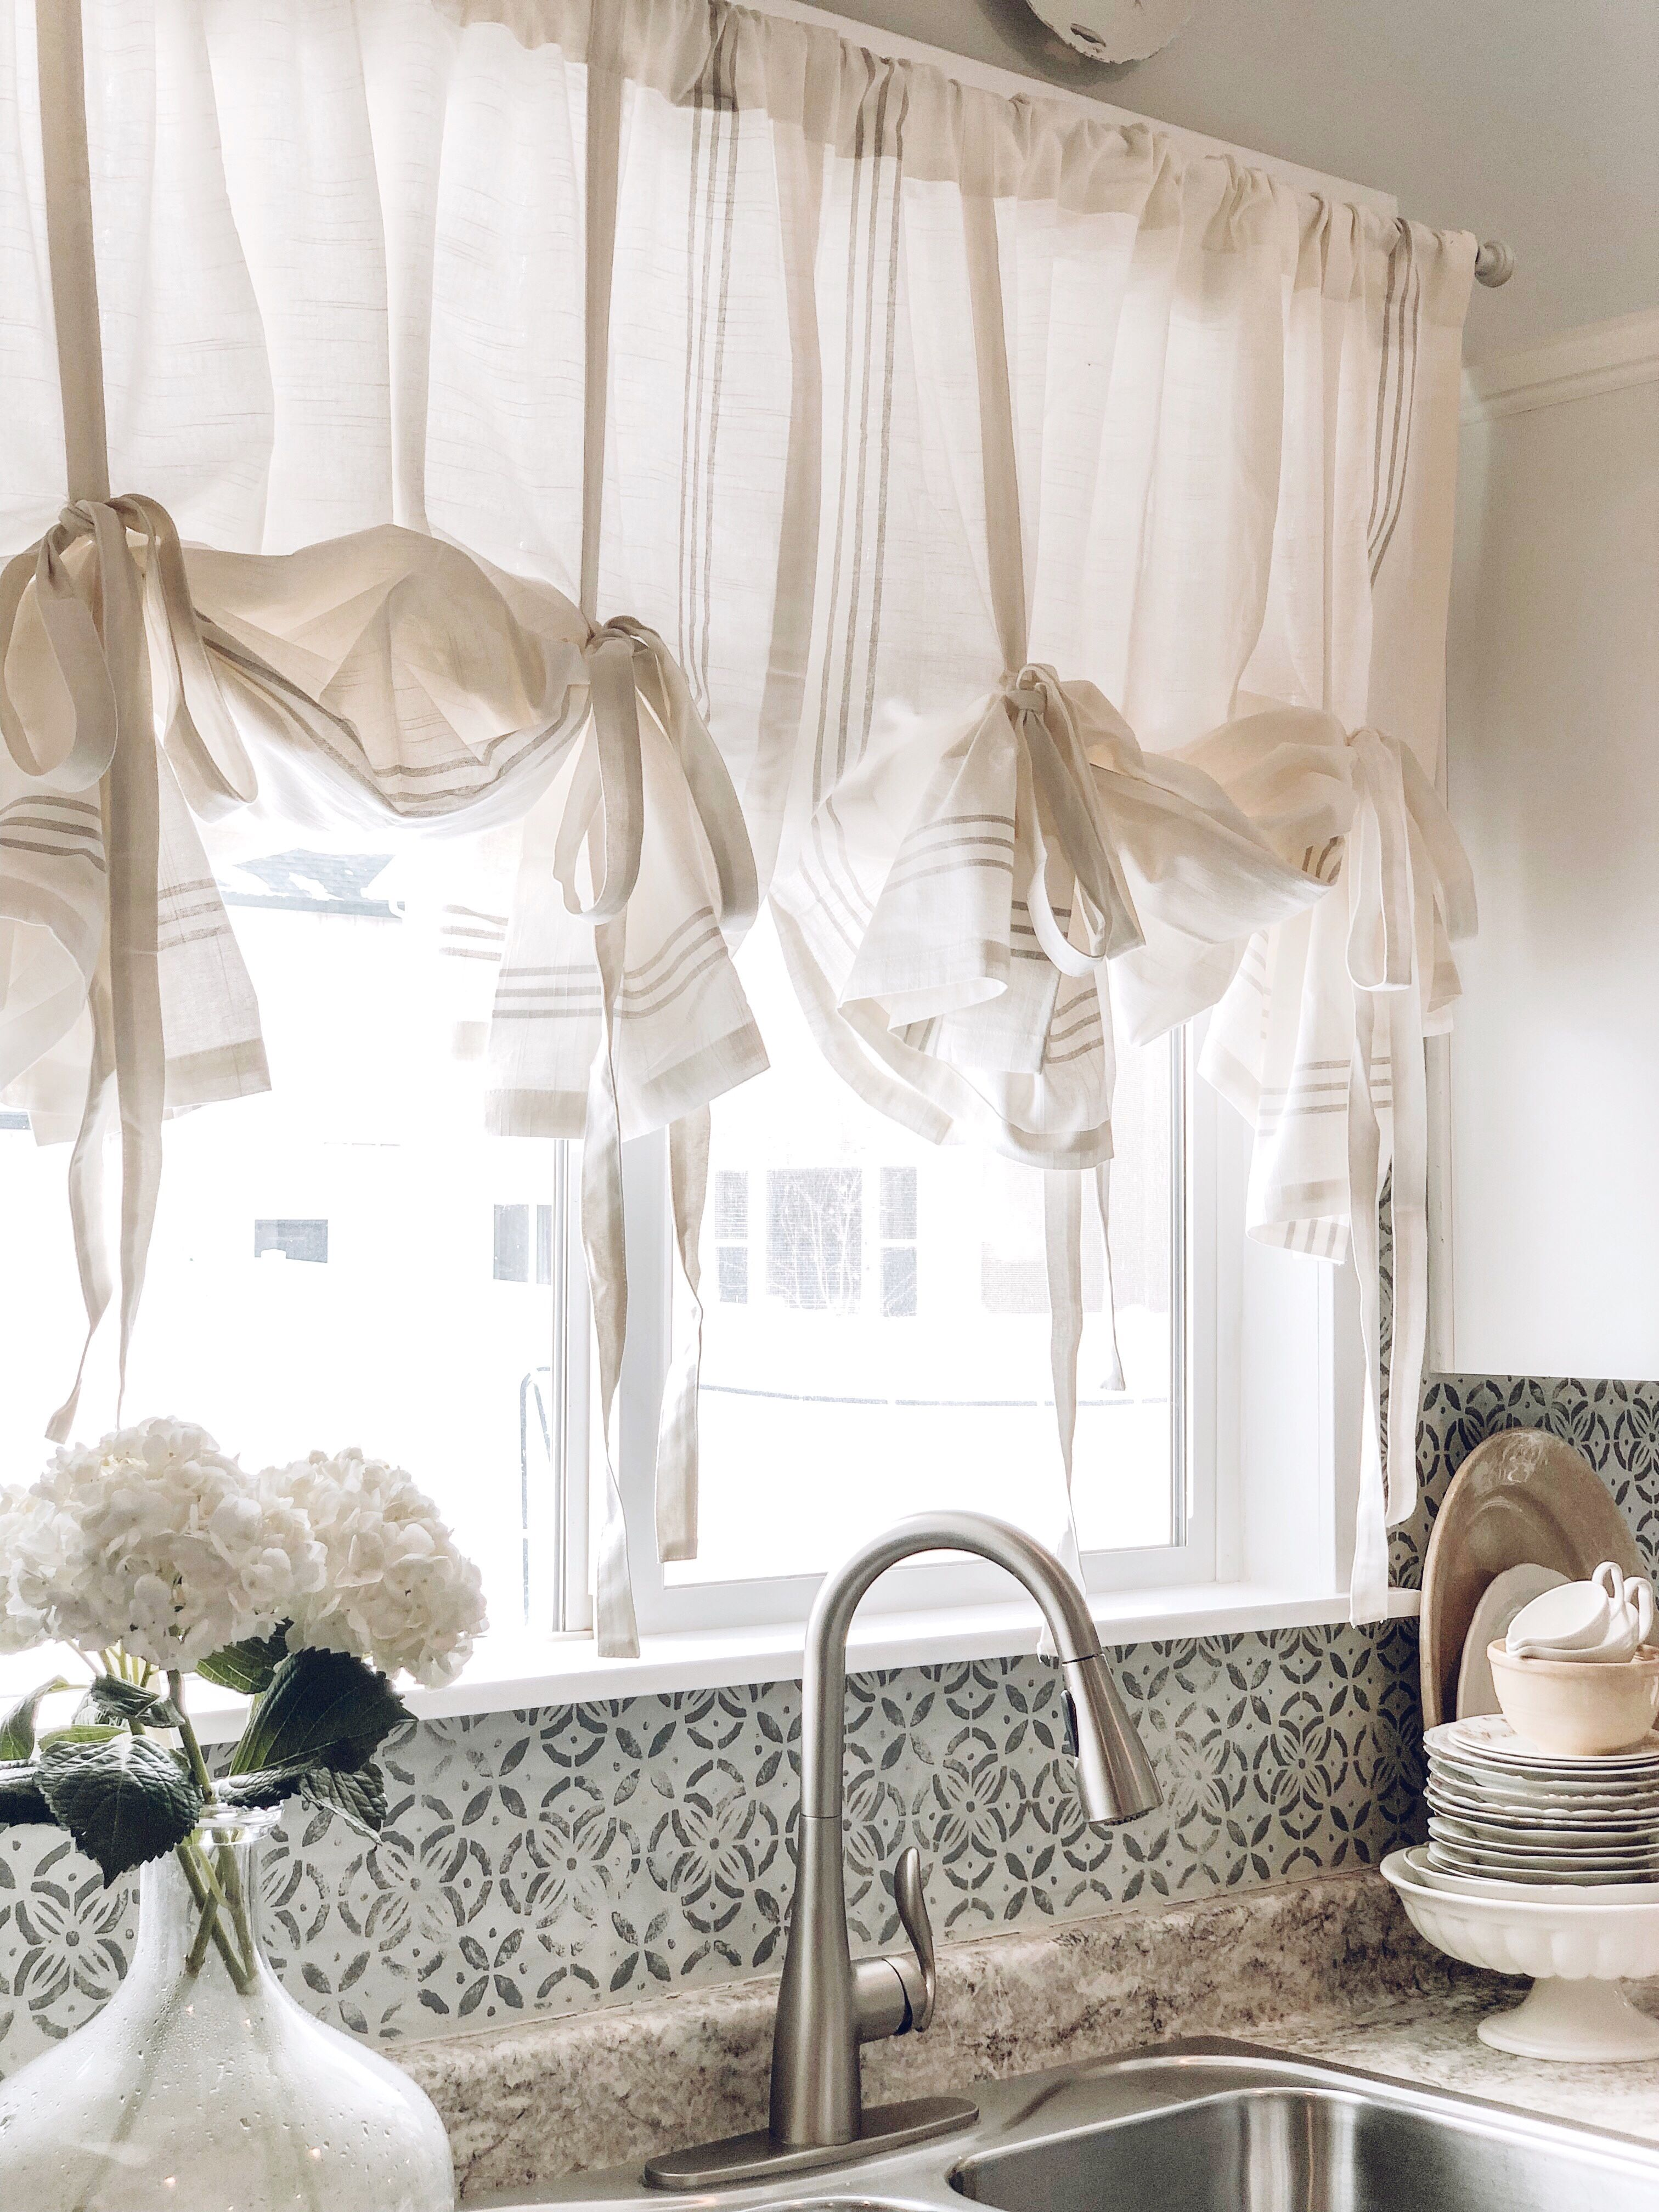 My Favorite Curtains Curtains Home Decor Home